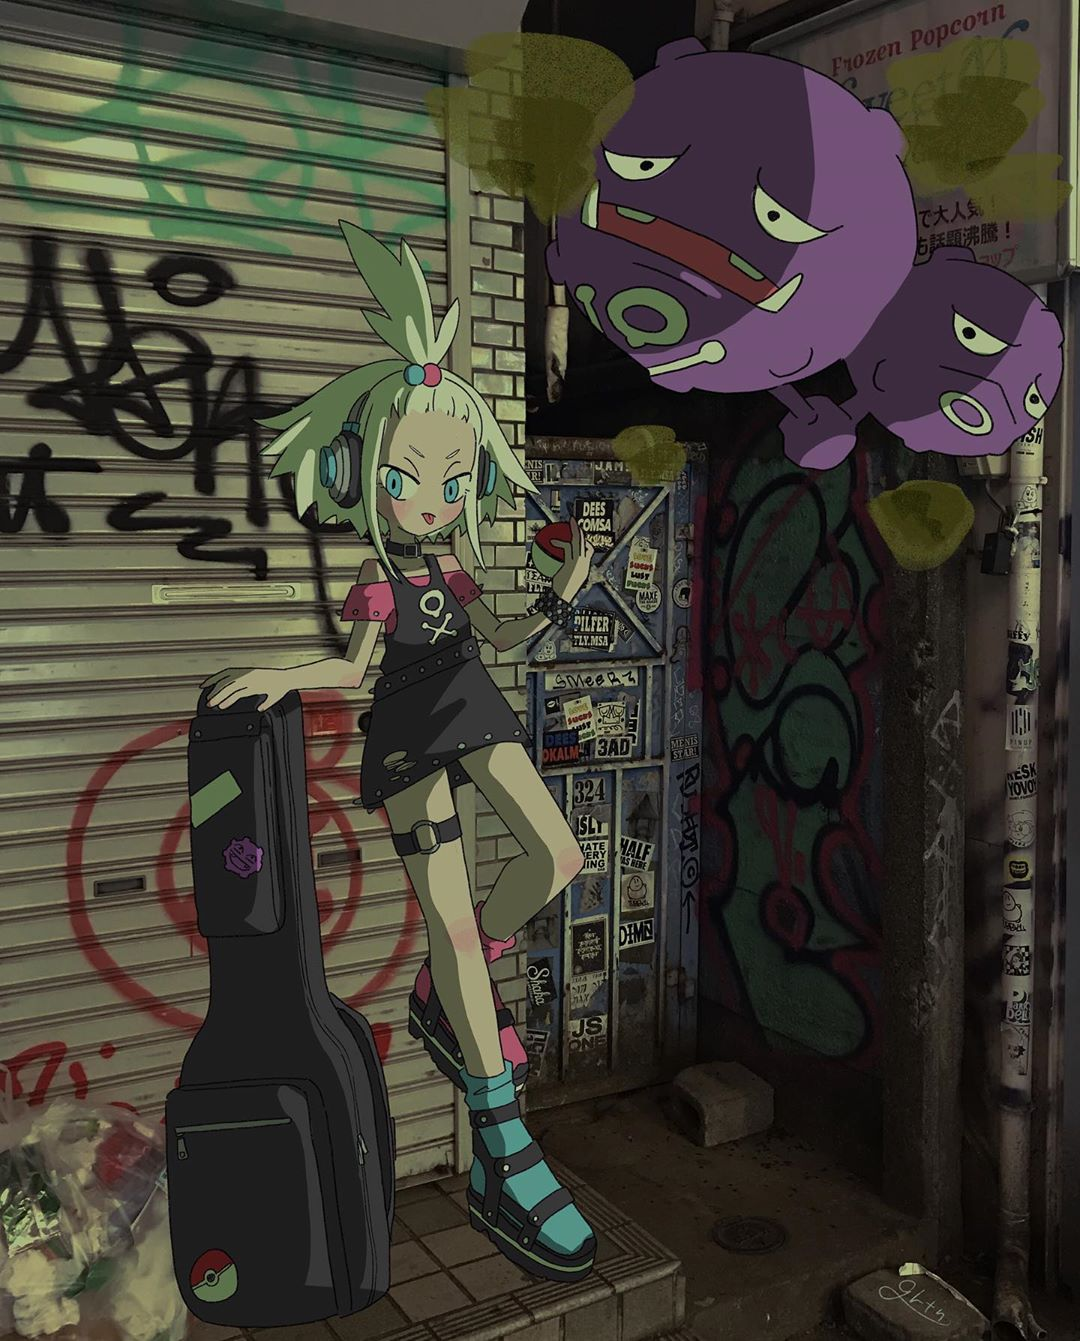 1girl alley alternate_costume bad_proportions bangs_pinned_back black_dress blue_eyes blush boots collar dress forehead full_body gen_1_pokemon graffiti guitar_case hair_bobbles hair_ornament headphones highres homika_(pokemon) instrument_case koffing leaning_back long_legs looking_at_viewer mismatched_footwear mixed_media mkrn_grtn off-shoulder_shirt off_shoulder overhead_door photo_background pinafore_dress pink_shirt platinum_blonde_hair poke_ball pokemon pokemon_(game) pokemon_bw2 poster_(object) shirt short_dress short_hair standing standing_on_one_leg sticker studded_bracelet thigh_strap tongue tongue_out torn_clothes trash_bag tsurime weezing white_hair